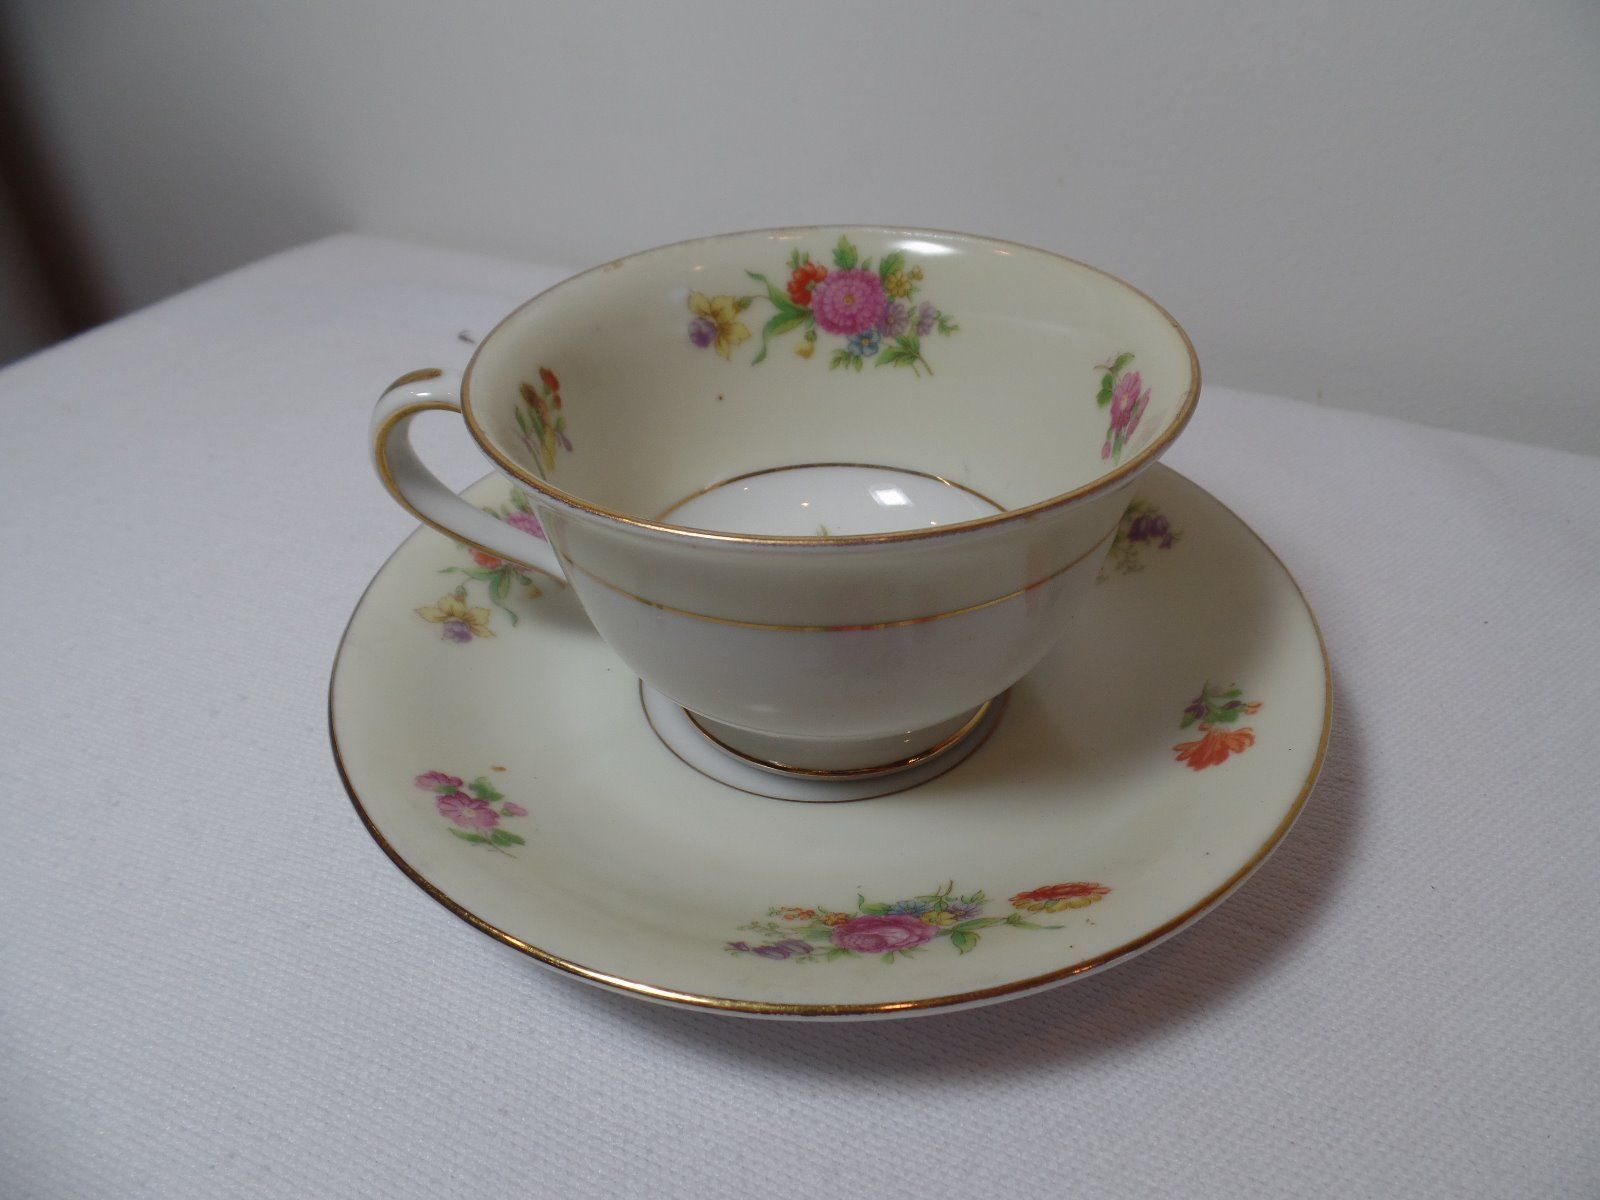 Vintage Rose China Made In Occupied Japan Teacup And Saucer Ebay